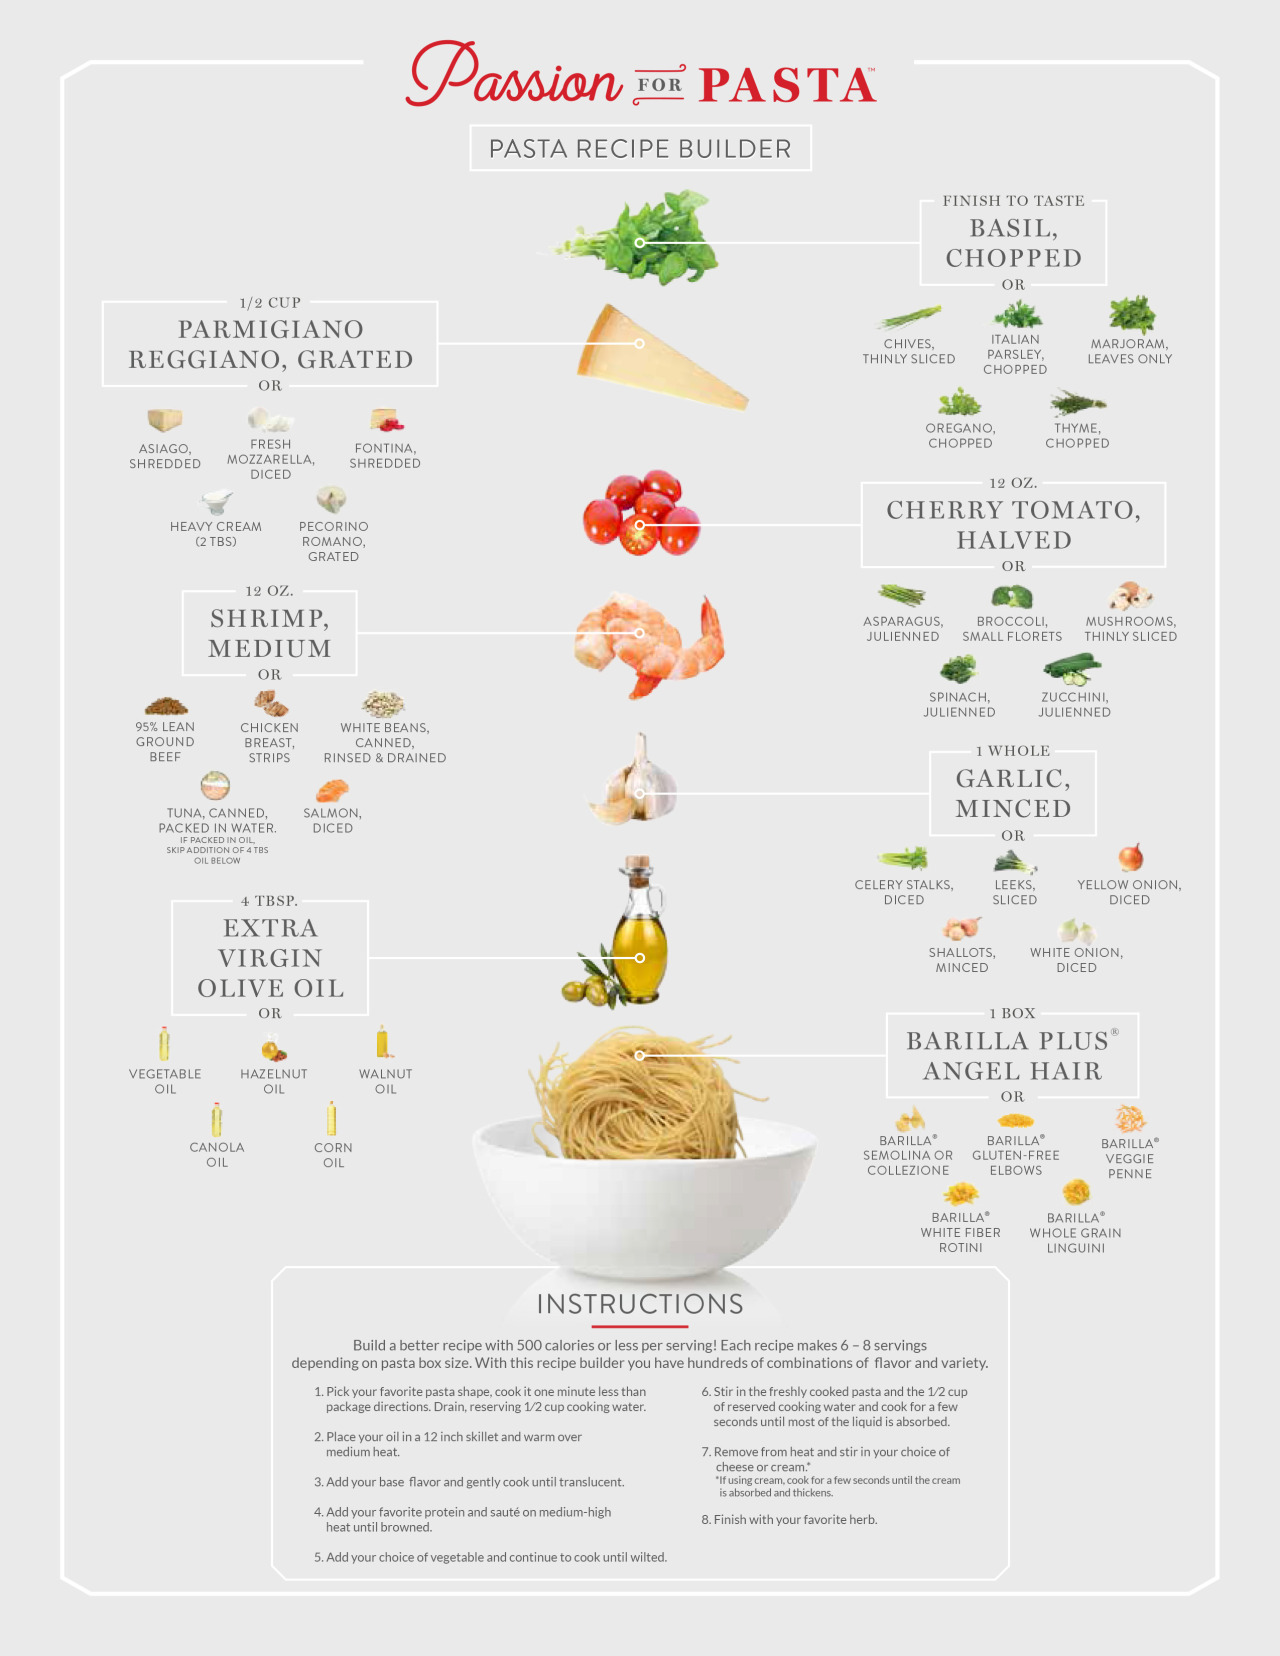 Passion for Pasta Recipe Builder: Healthy Pasta Dishes